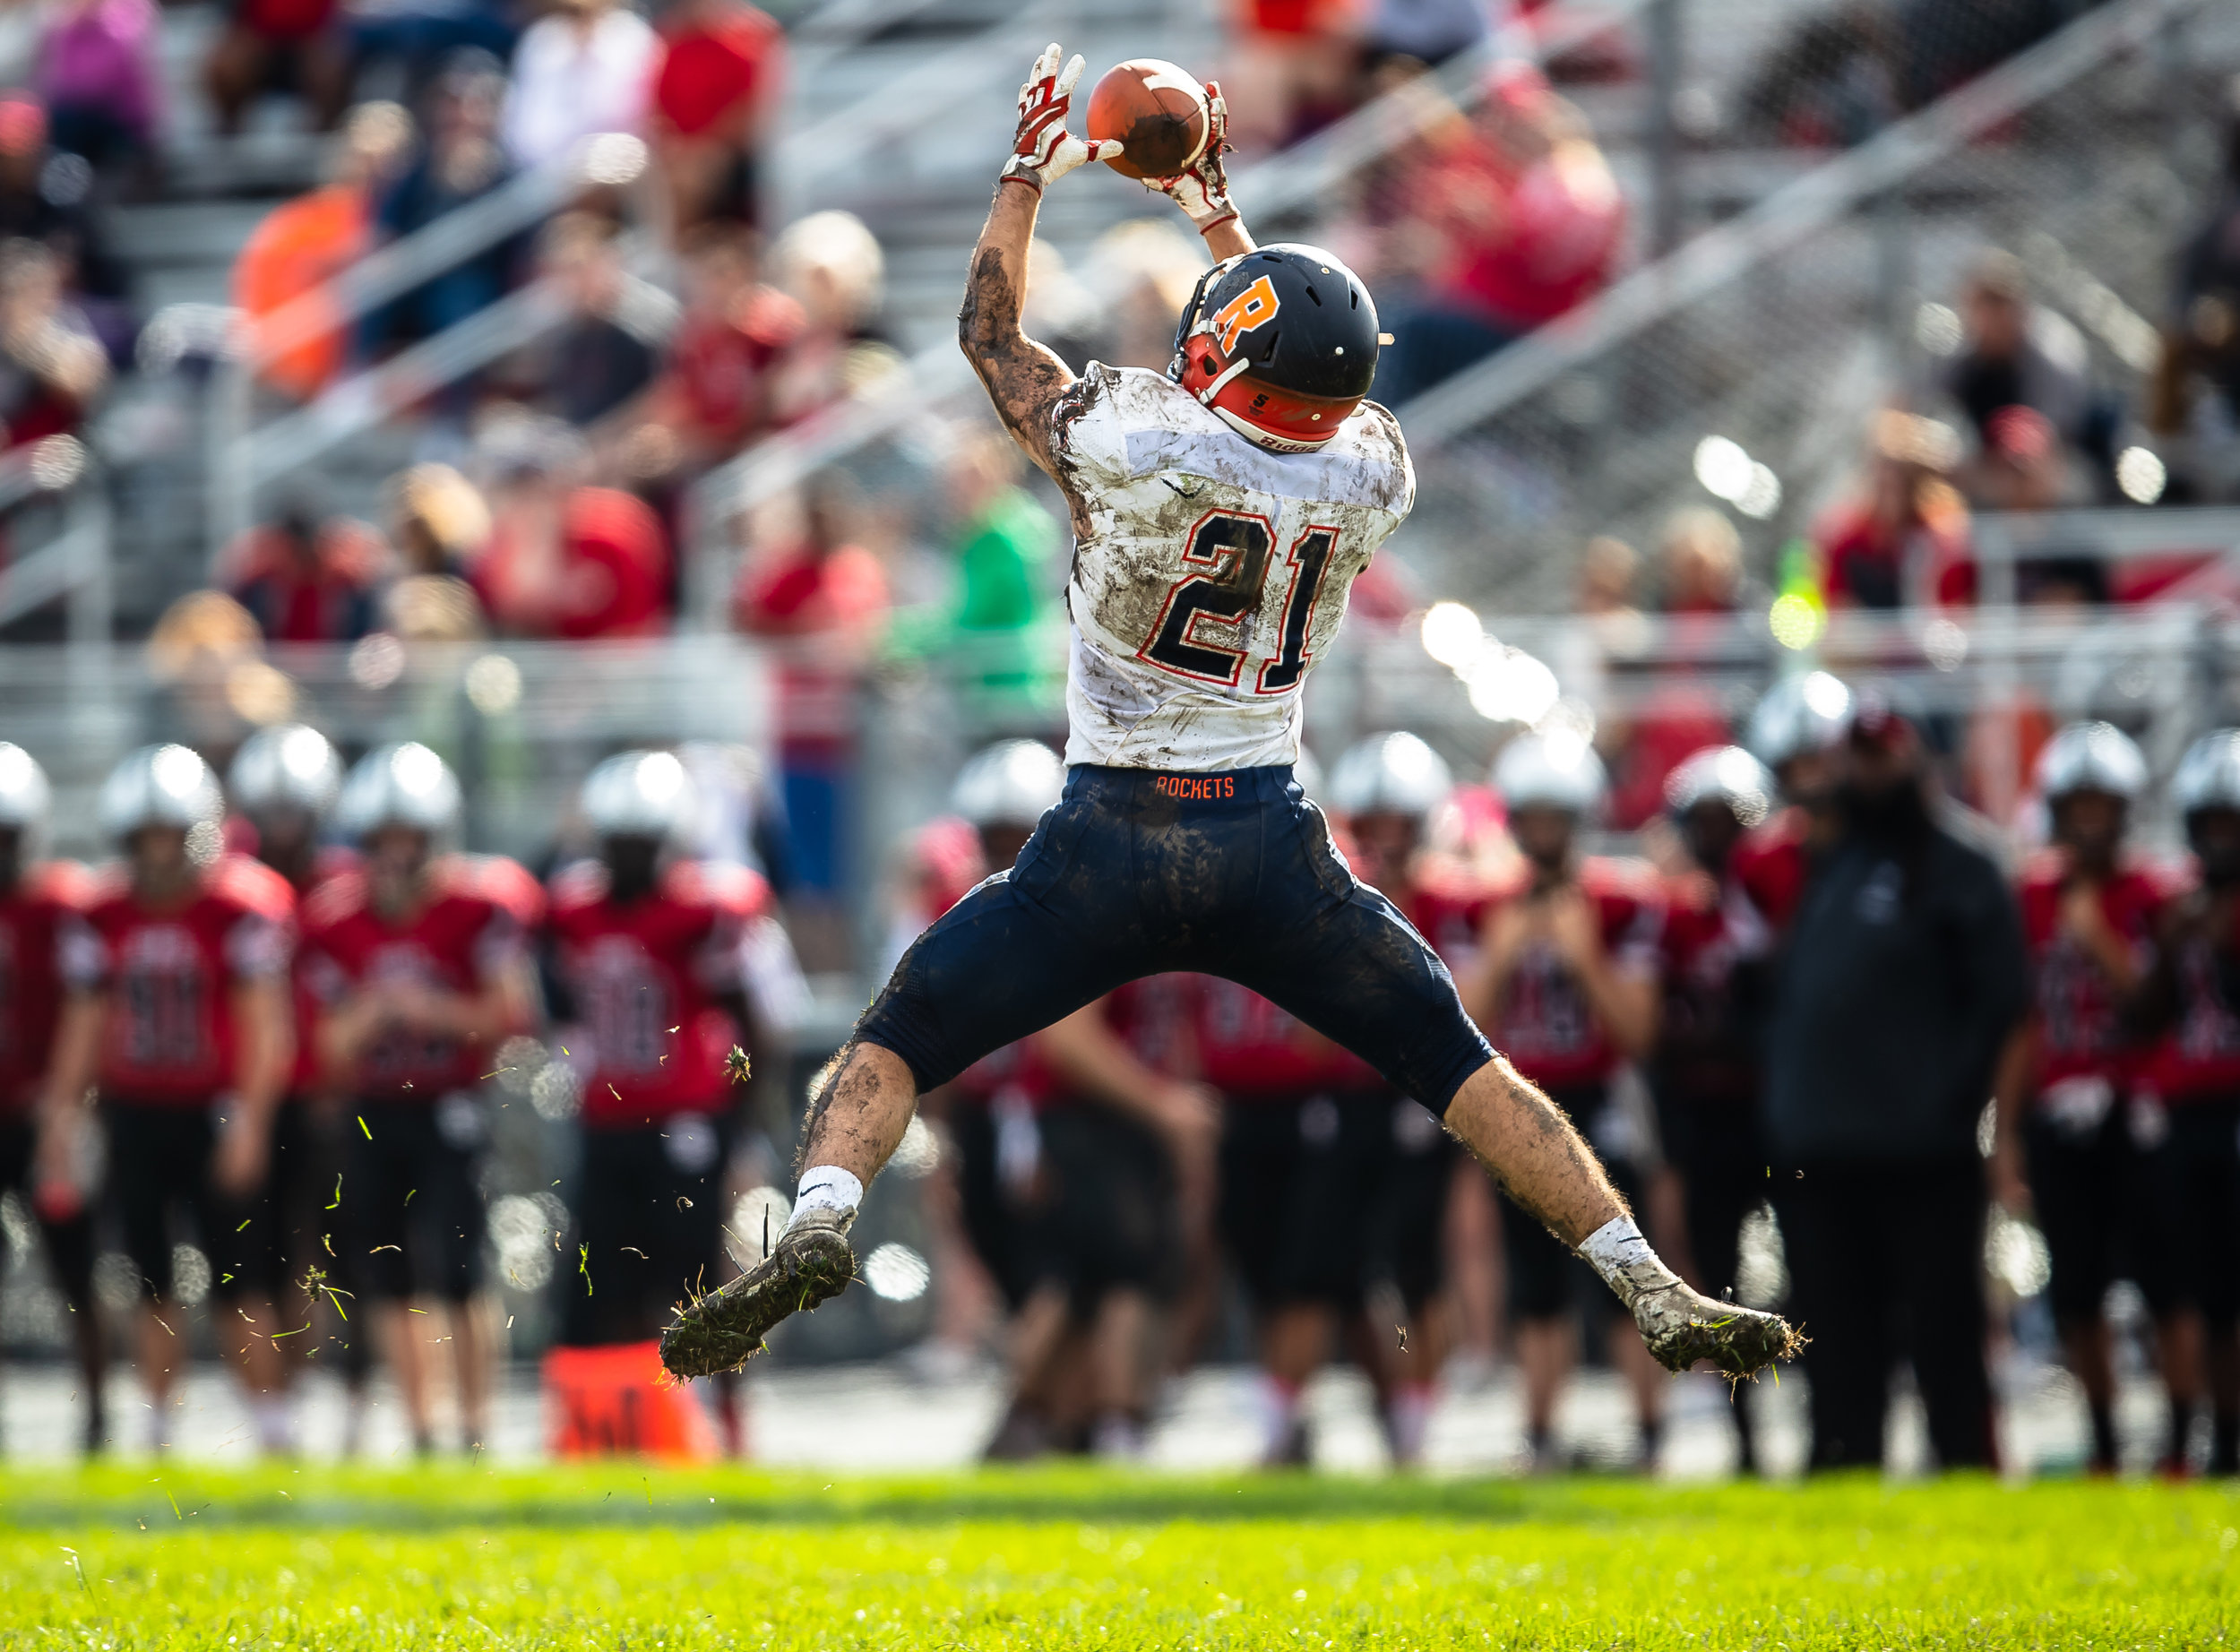 Rochester's David Yoggerst (21) makes a leaping catch against Springfield in the second half at Memorial Stadium, Saturday, Oct. 6, 2018, in Springfield, Ill. [Justin L. Fowler/The State Journal-Register]